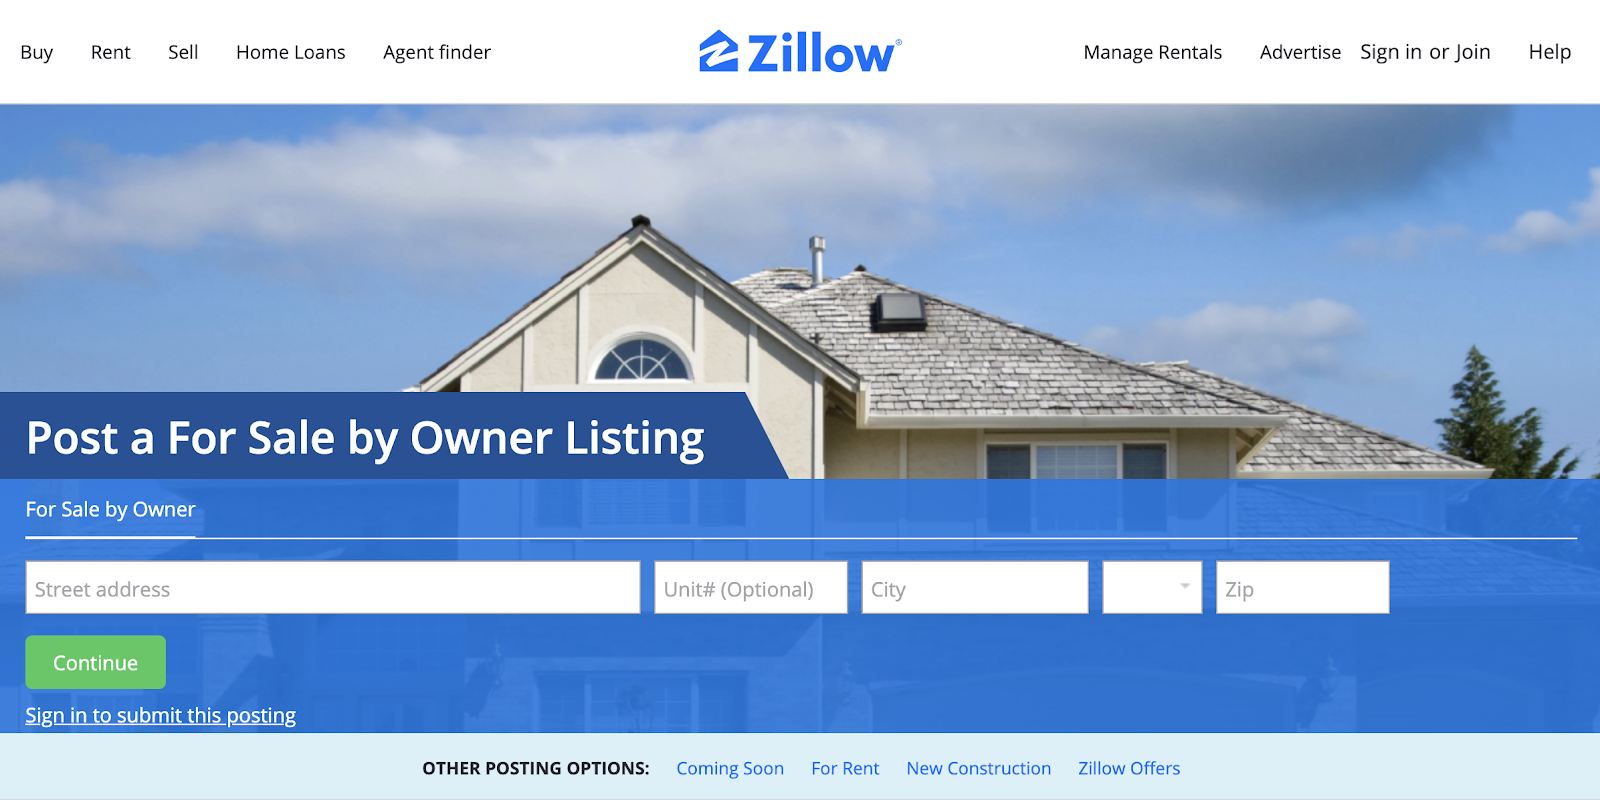 Post a FSBO Listing on Zillow